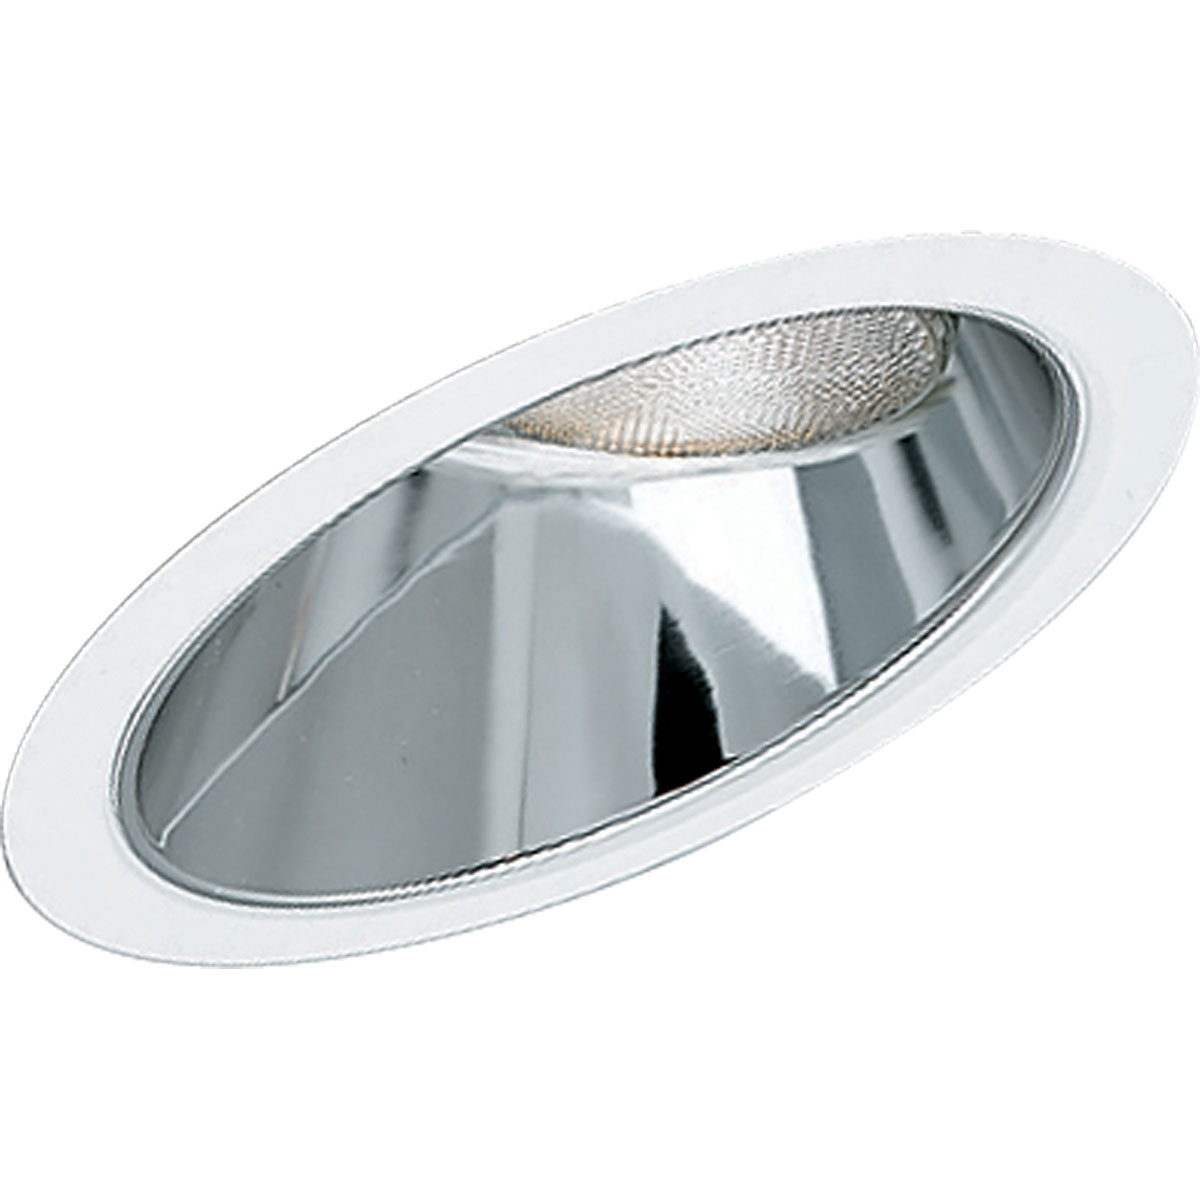 Installing Recessed Lighting Sloped Ceiling : Progress lighting p sloped ceiling recessed trim